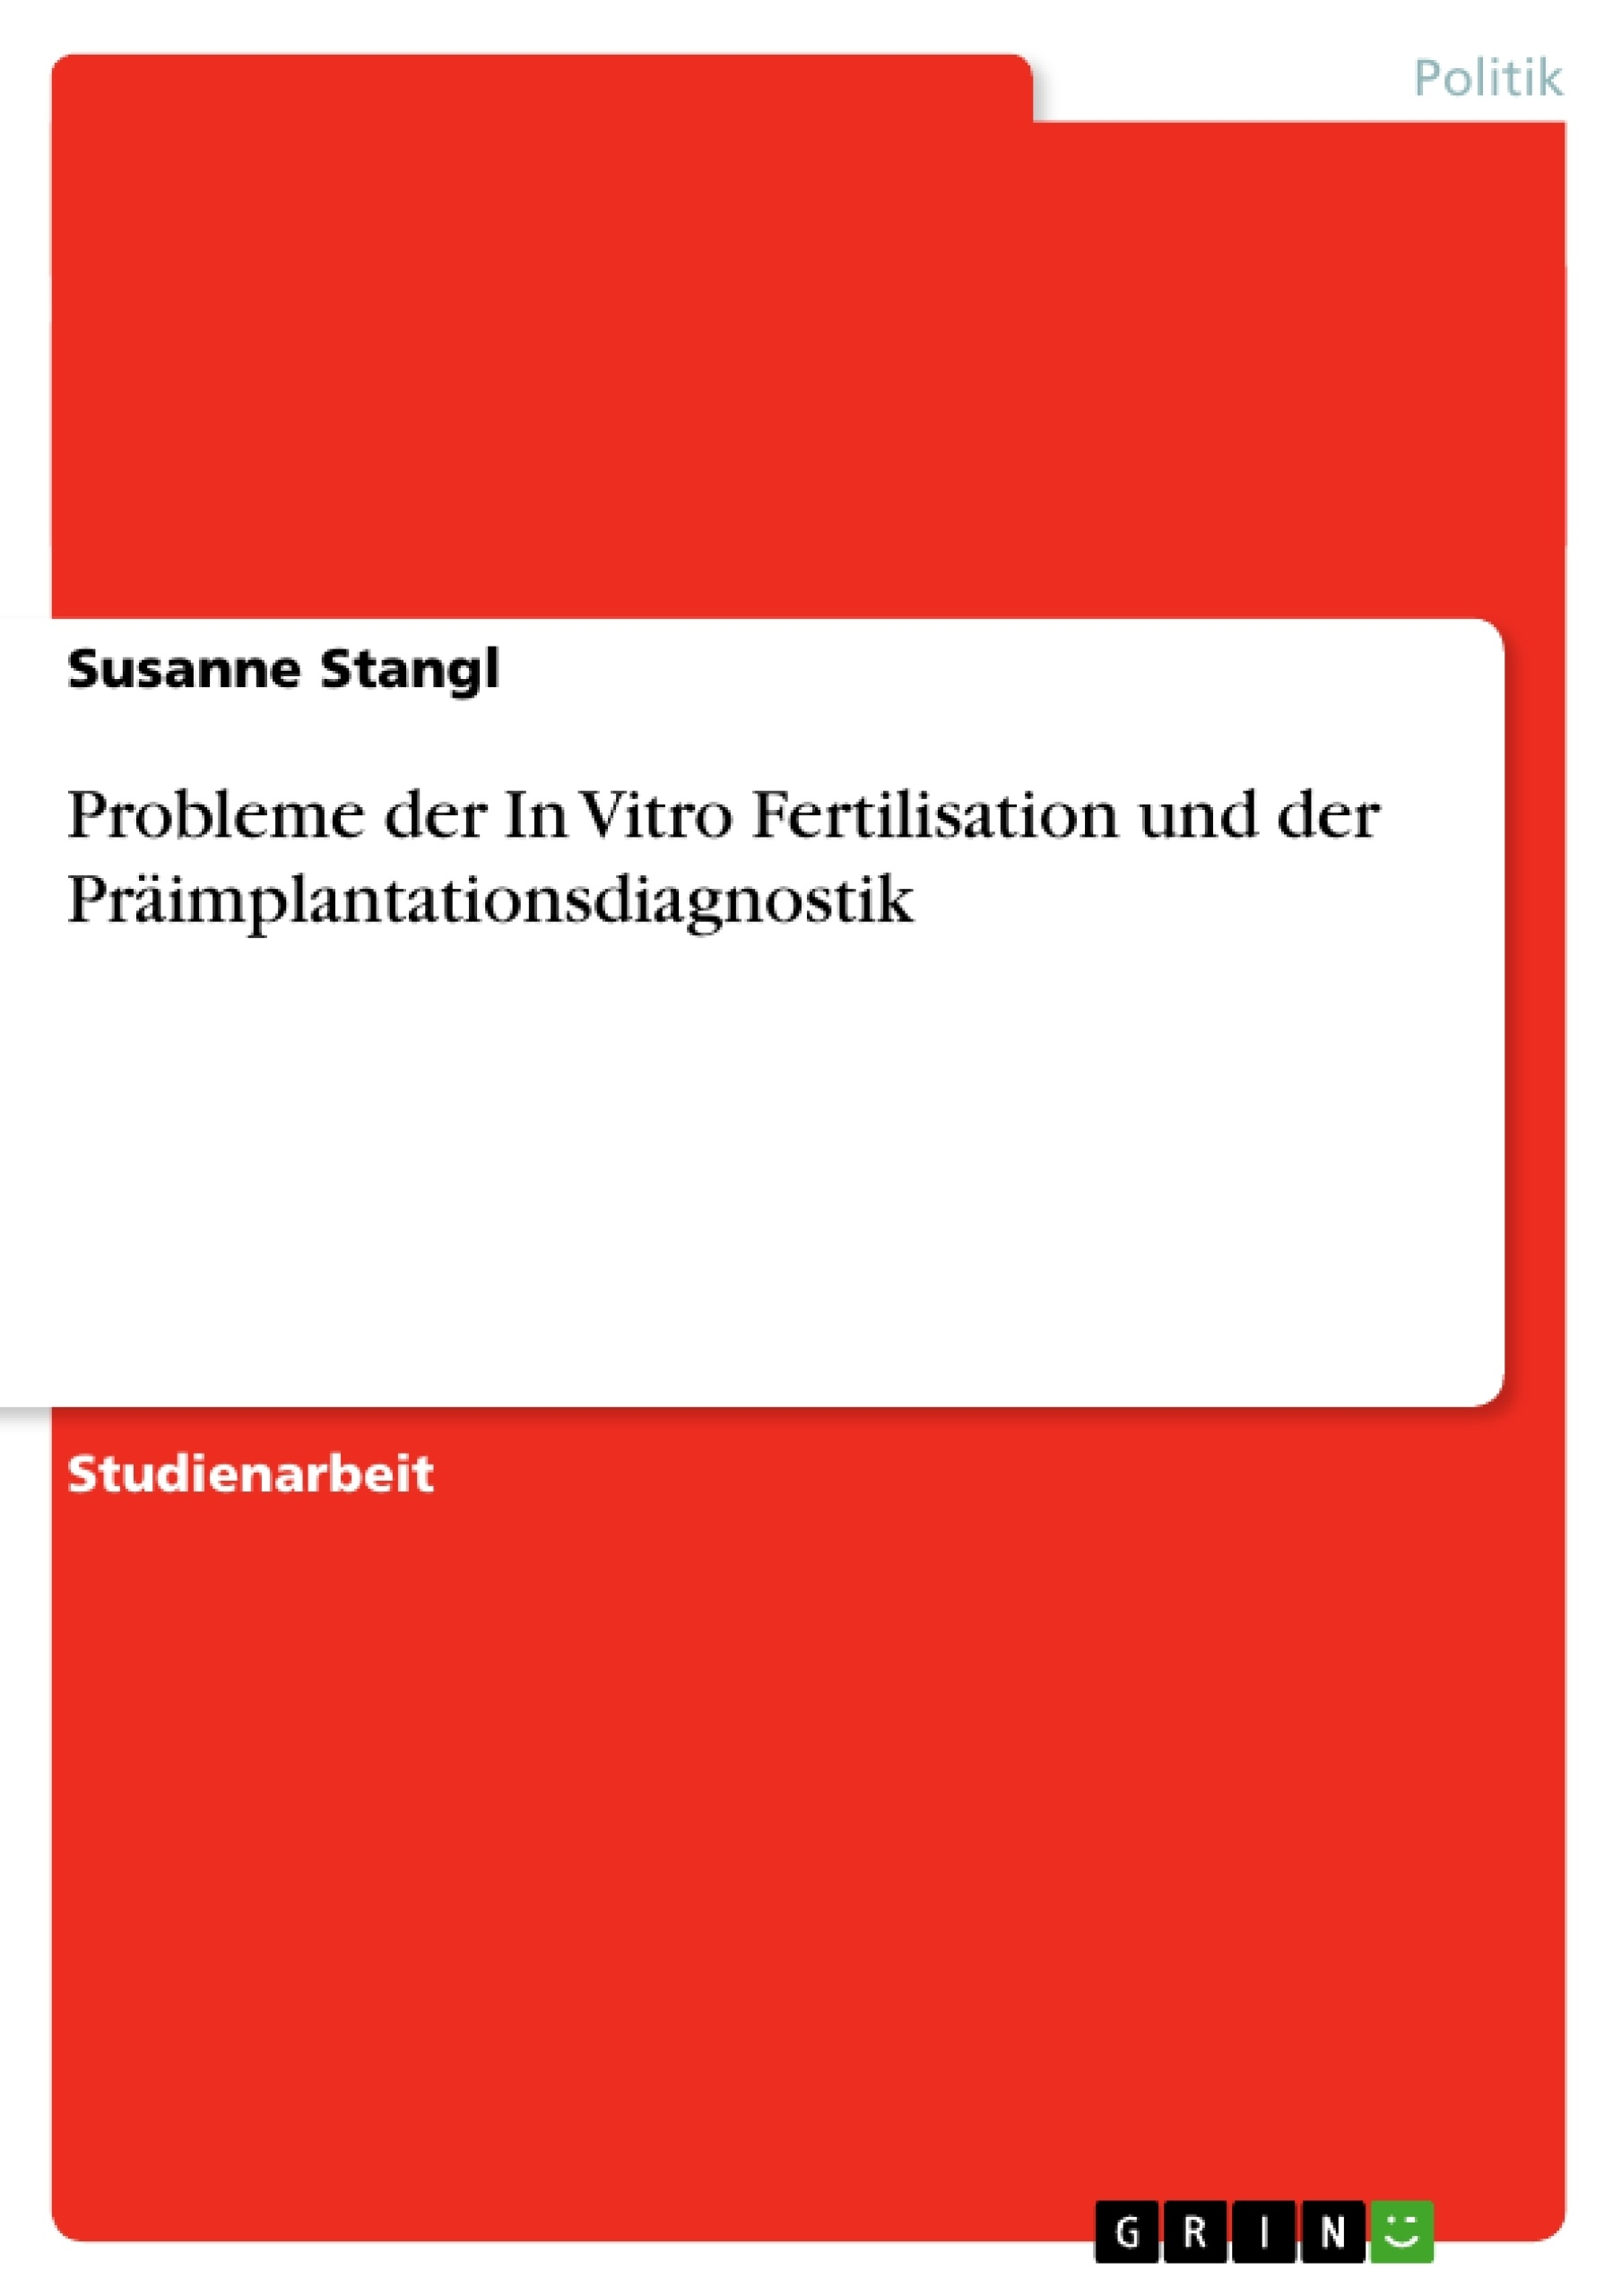 Titel: Probleme der In Vitro Fertilisation und der Präimplantationsdiagnostik